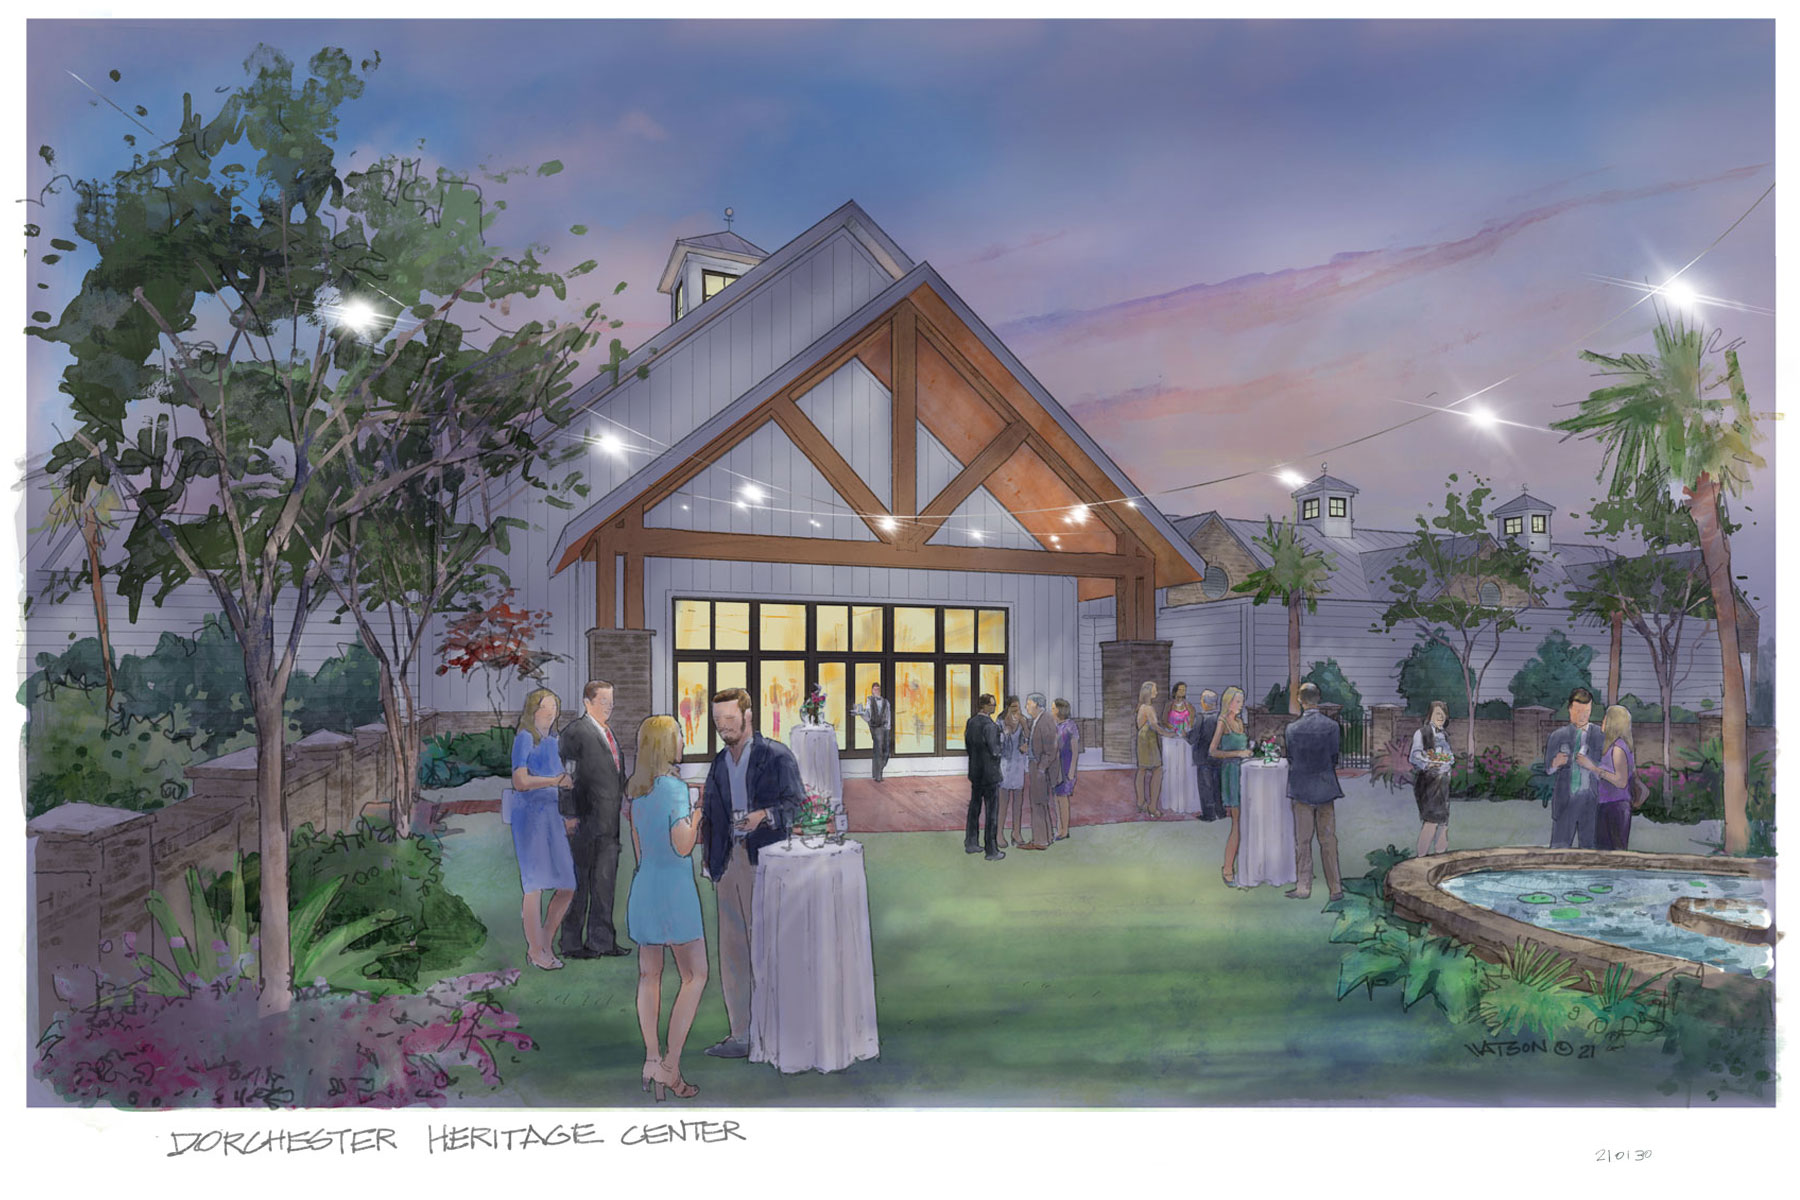 Rear view rendering of Dorchester County Heritage Center Dale Watson rendering of Swallowtail Architecture design